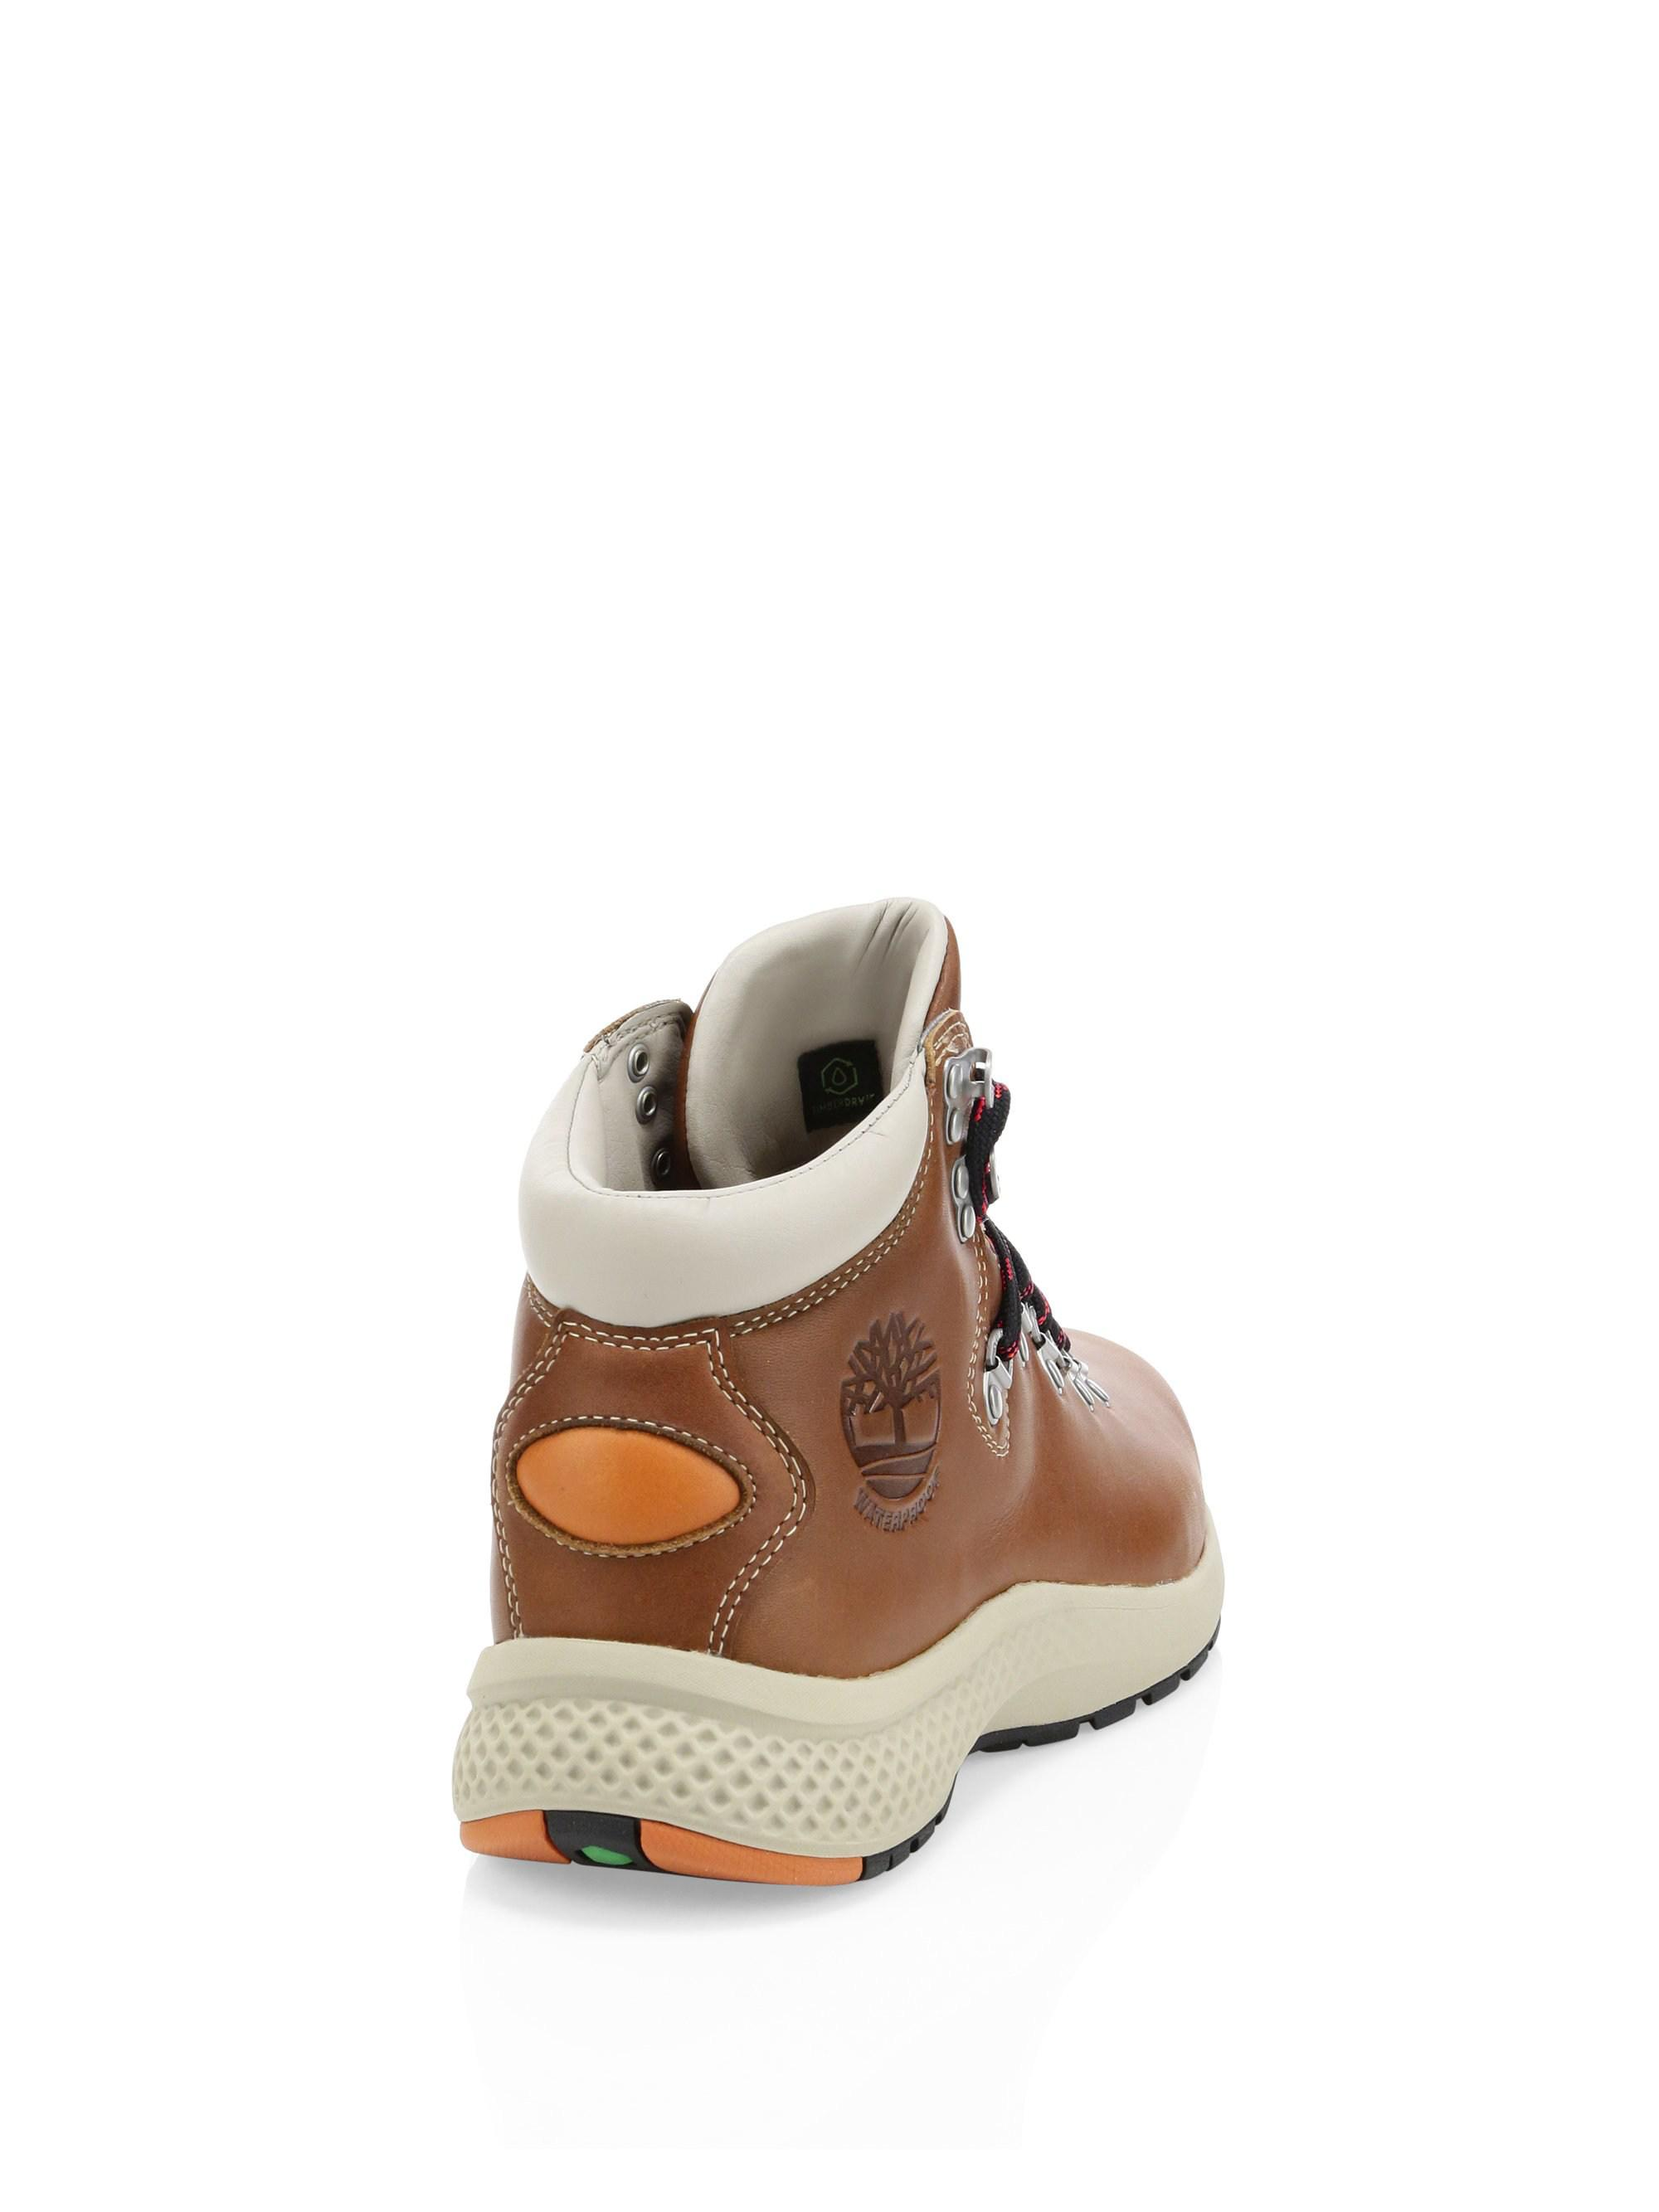 f6dafee9a25 Timberland Aerocore 1978 Hiker Waterproof Boots in Brown for Men - Lyst